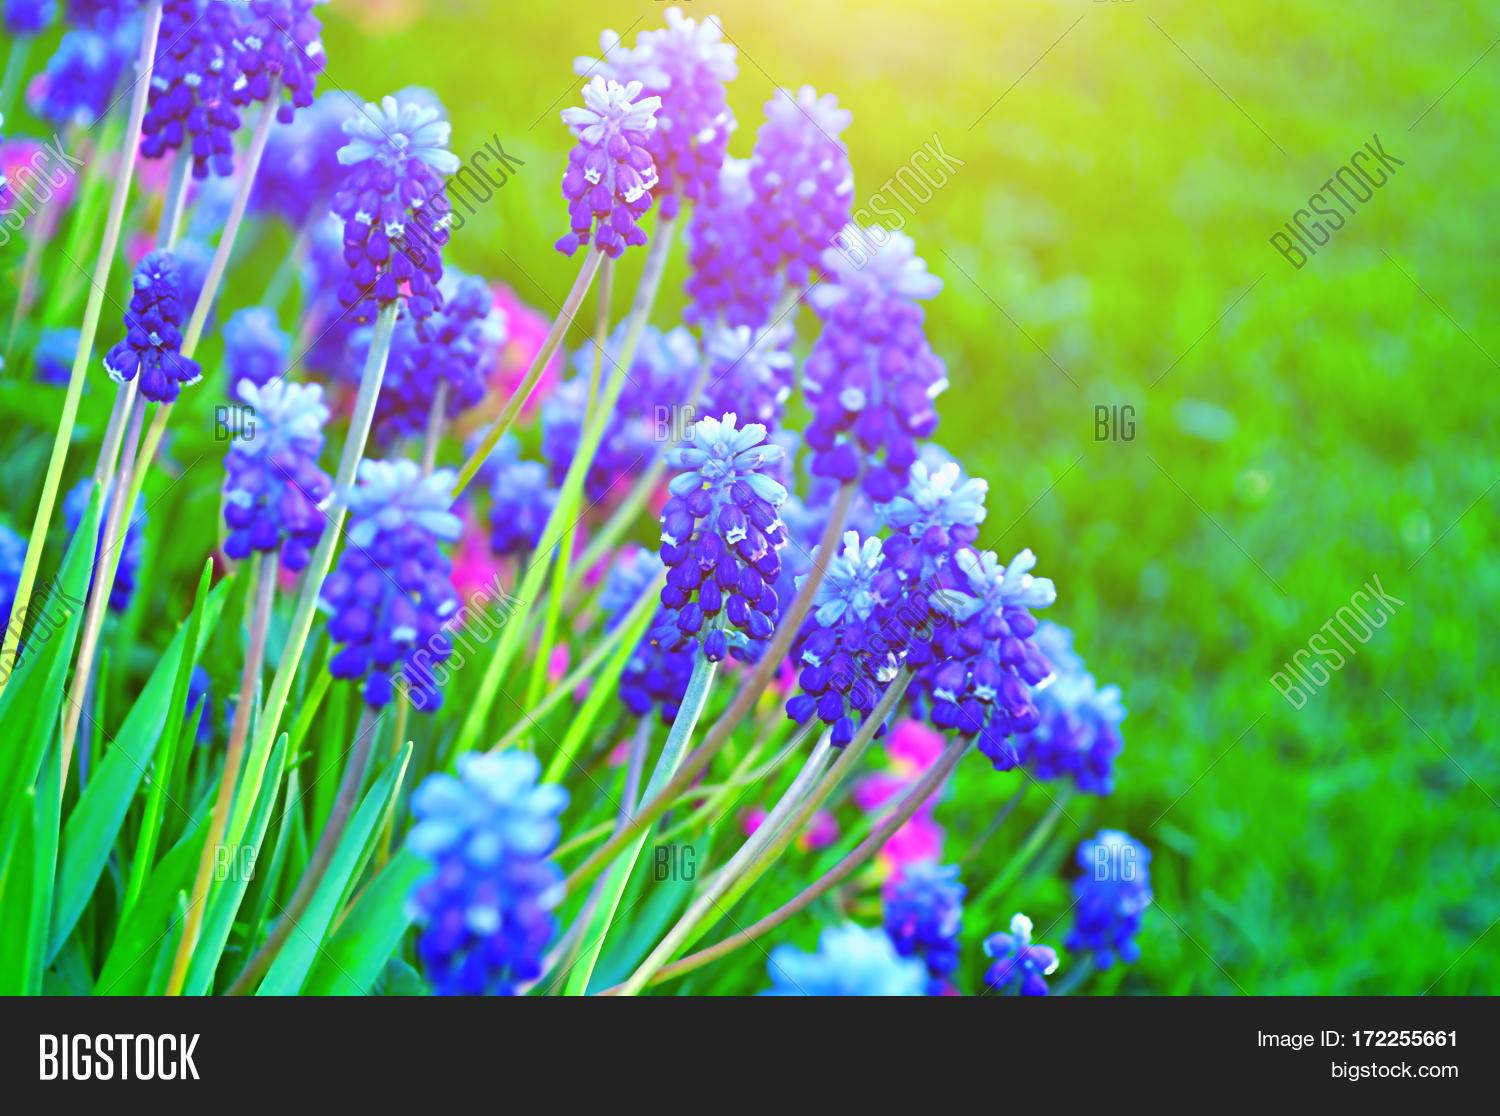 spring flowers muscari floral image u0026 photo bigstock